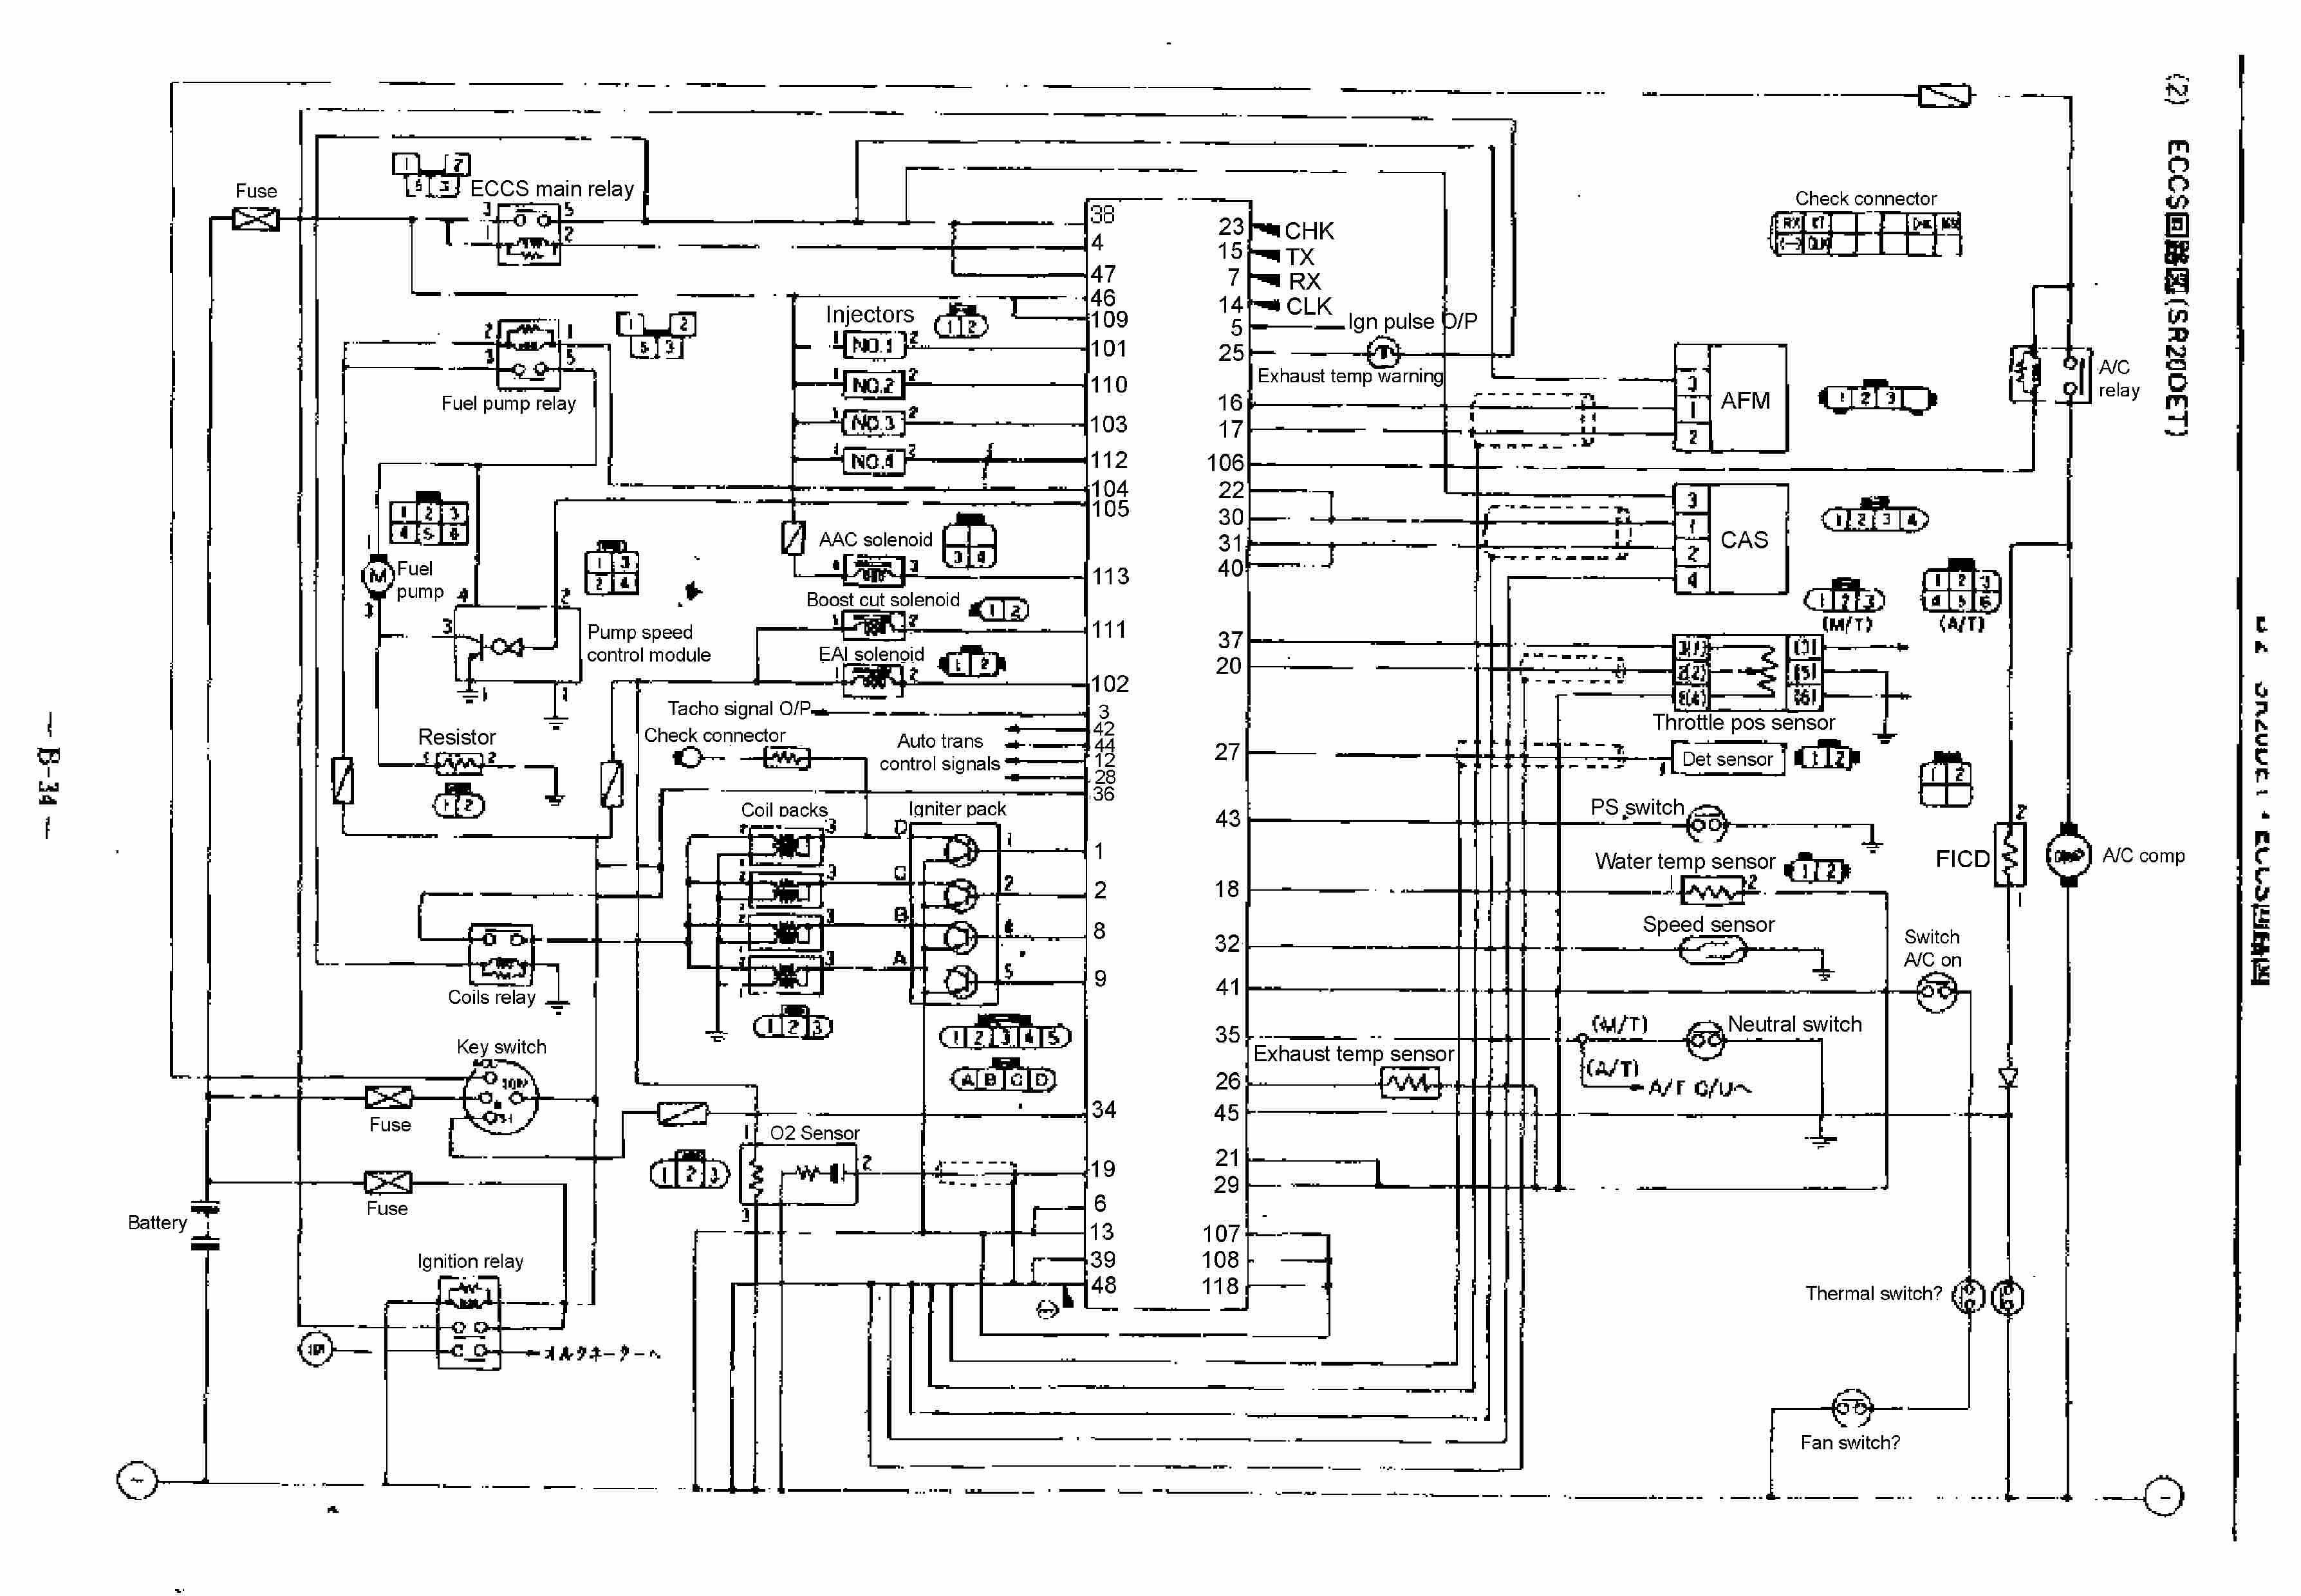 Car thermostat Diagram Wiring Diagram for Amplifier Car ... on